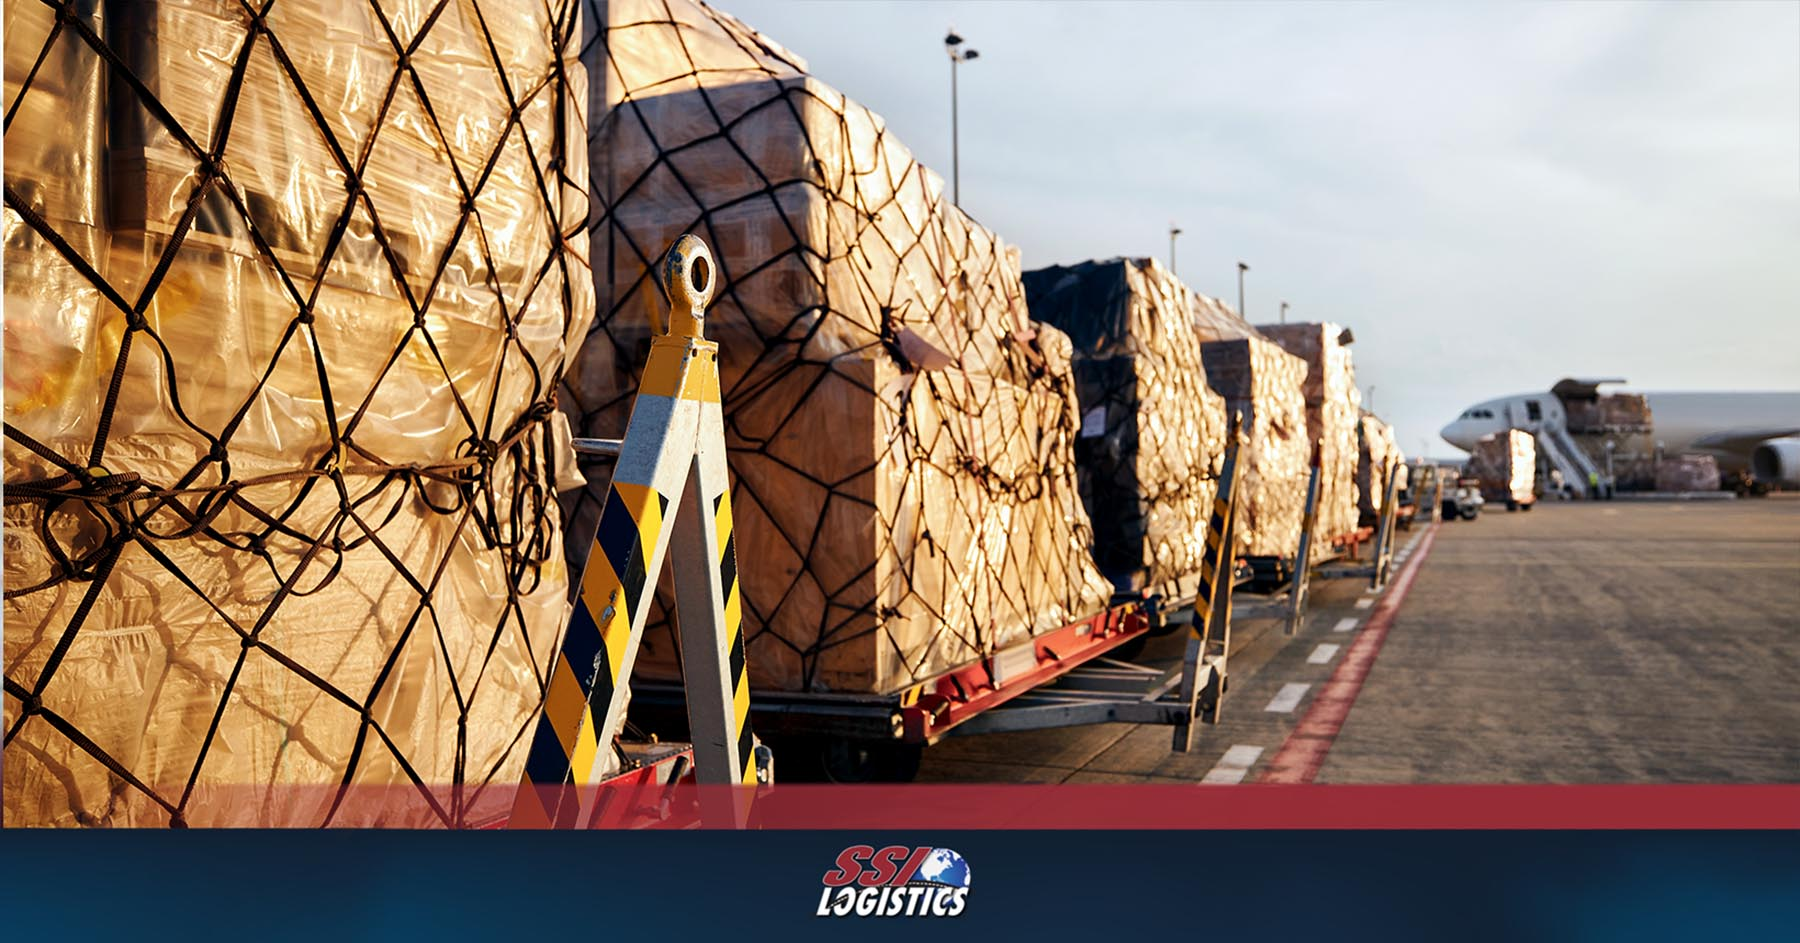 SSI Logistics expedited shipping image h